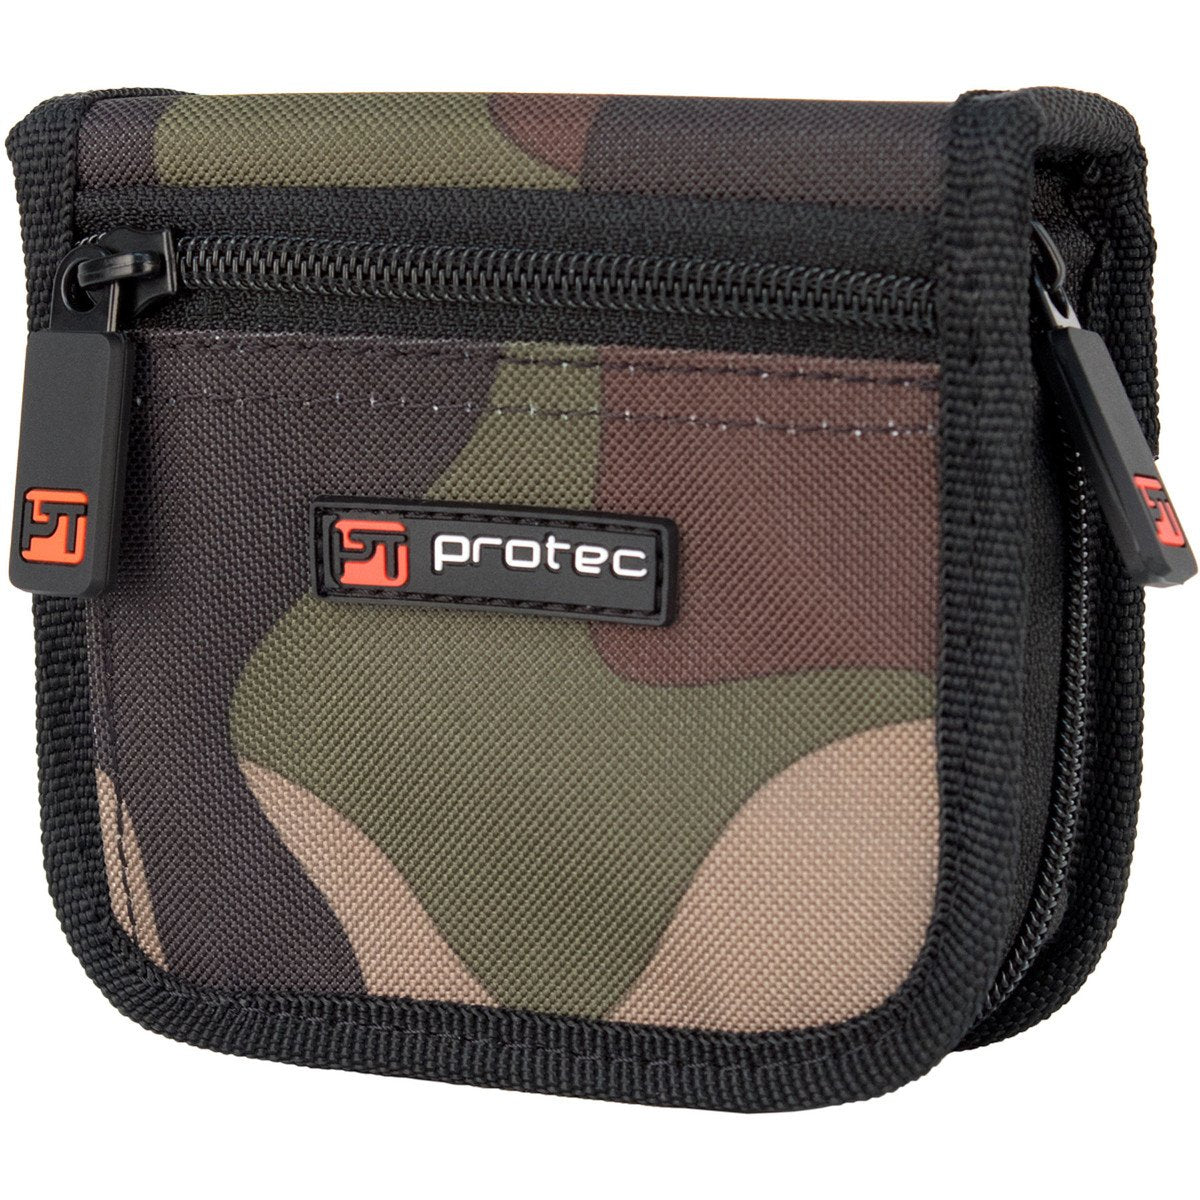 Protec - 2-Piece Trombone Nylon Mouthpiece Pouch with Zipper Closure (Camo)-Accessories-Protec-Music Elements